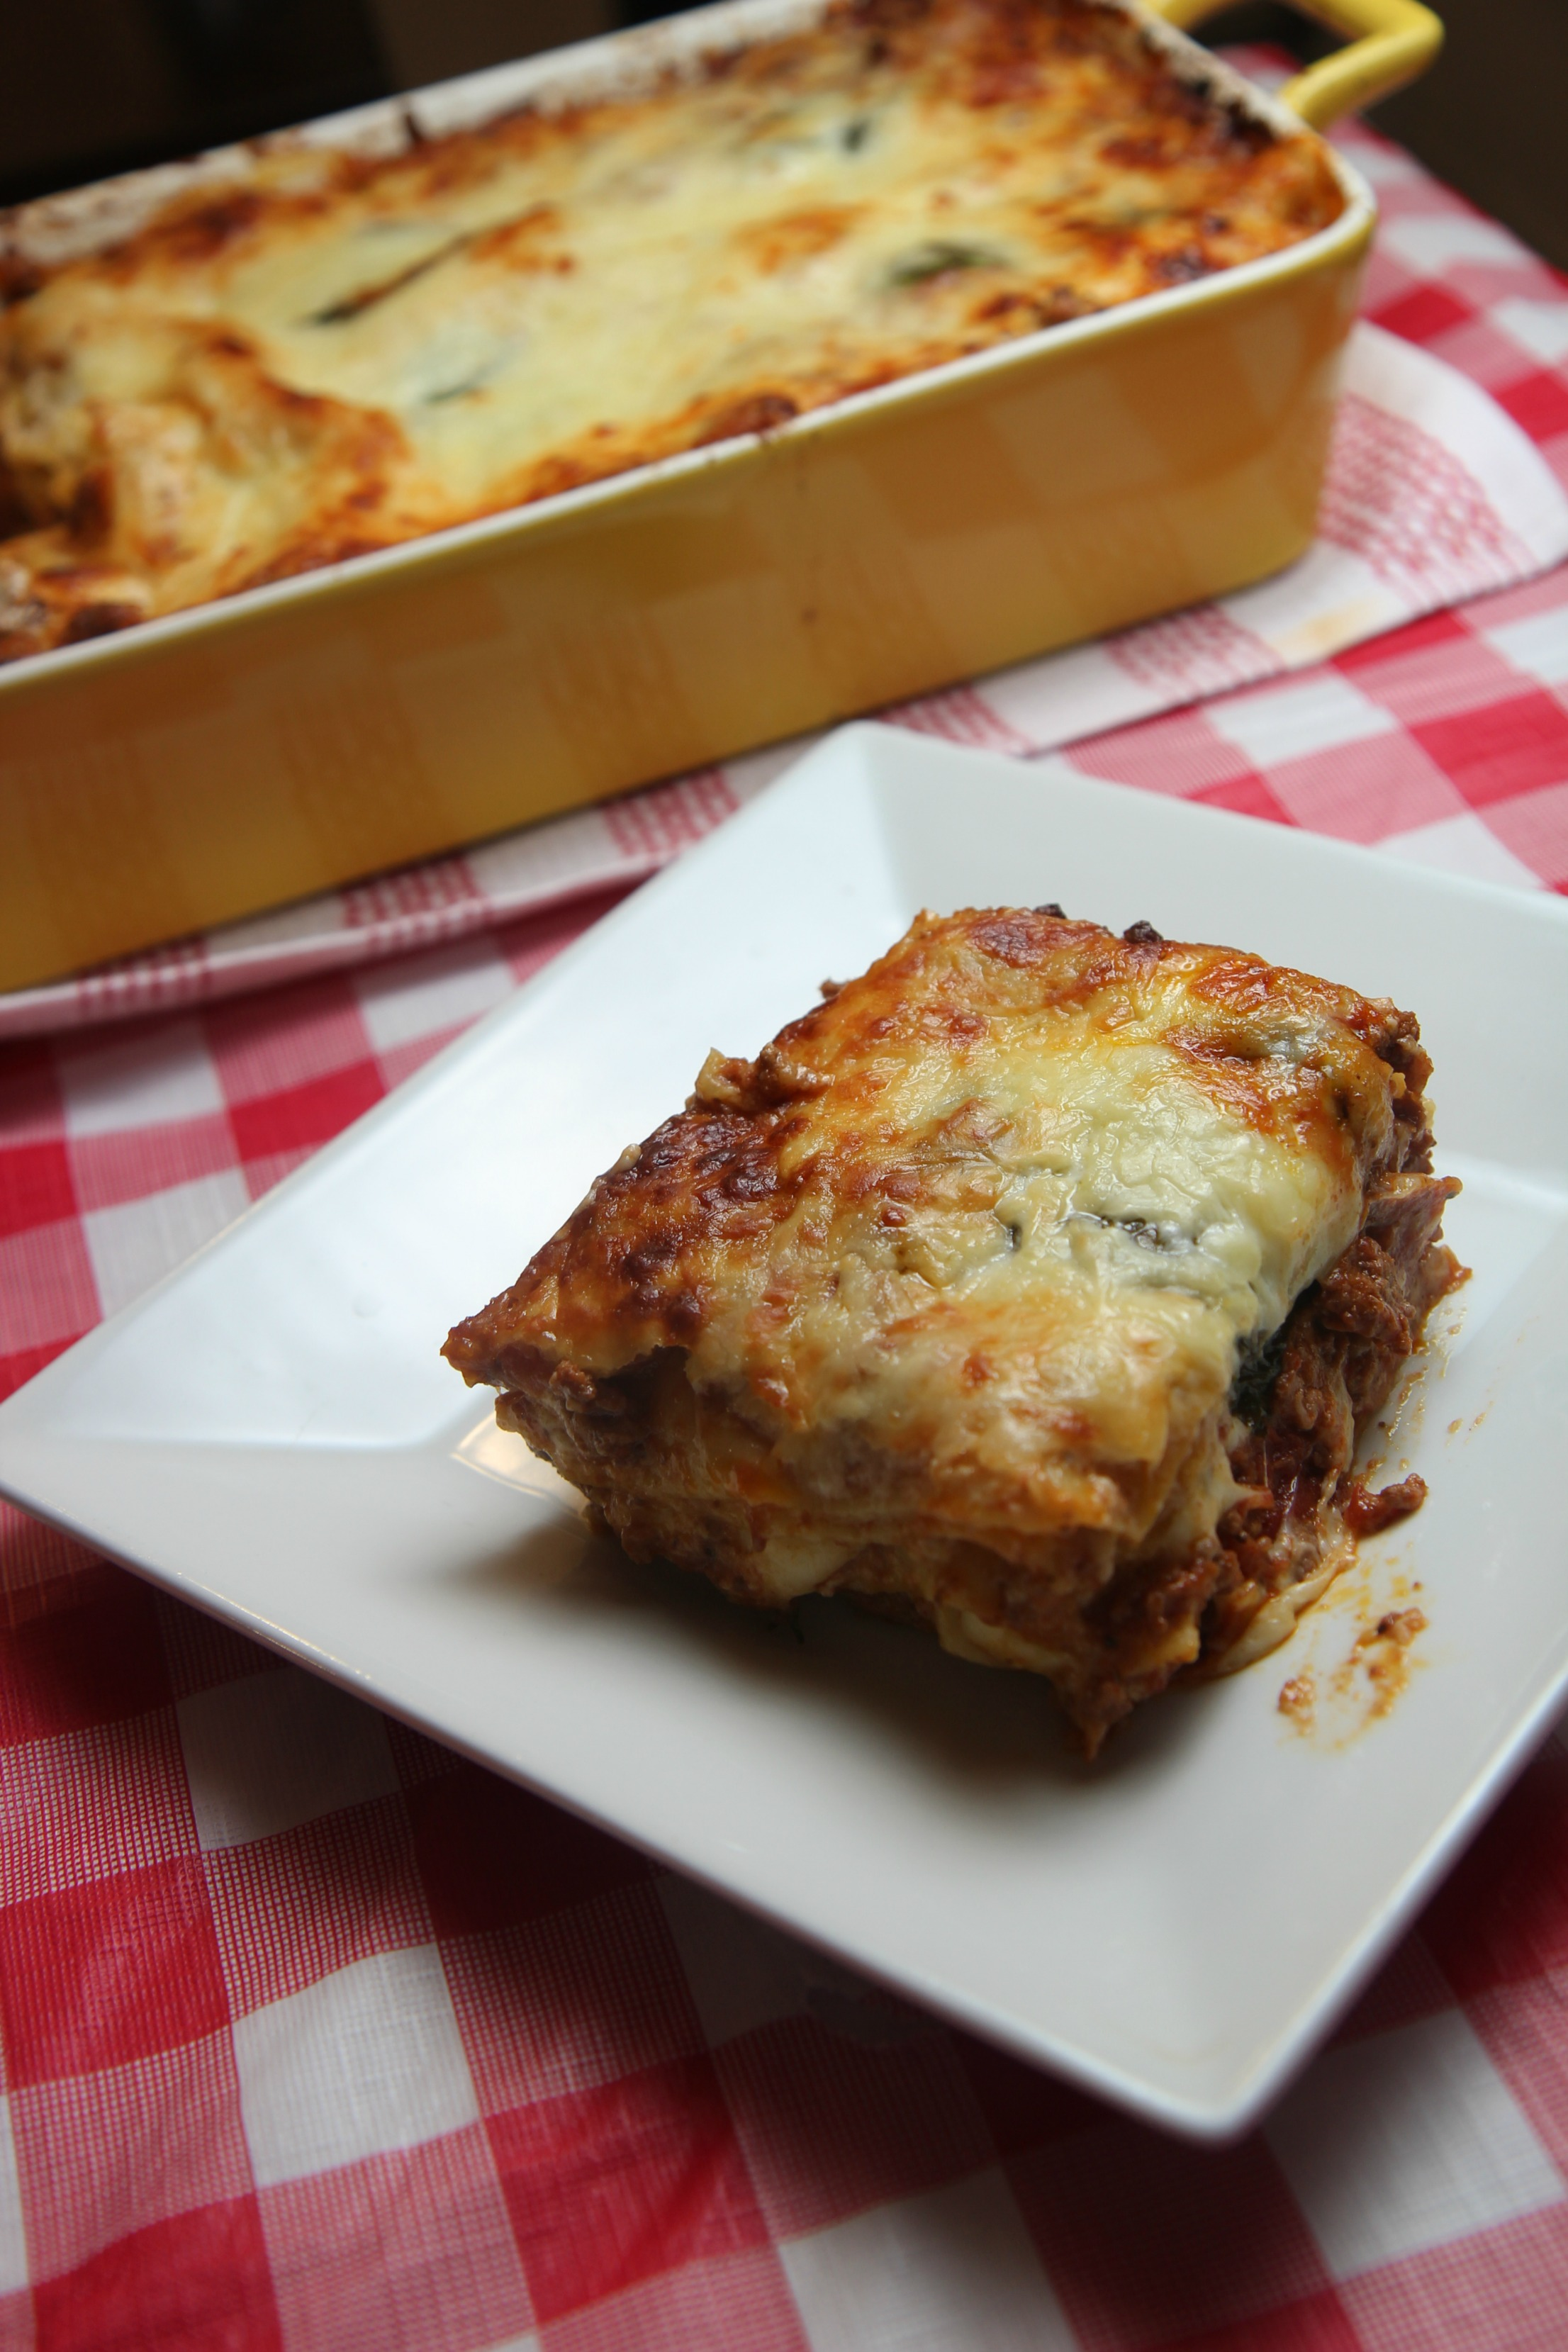 This ultimate lasagna will be your new favorite recipe for homemade lasagna!